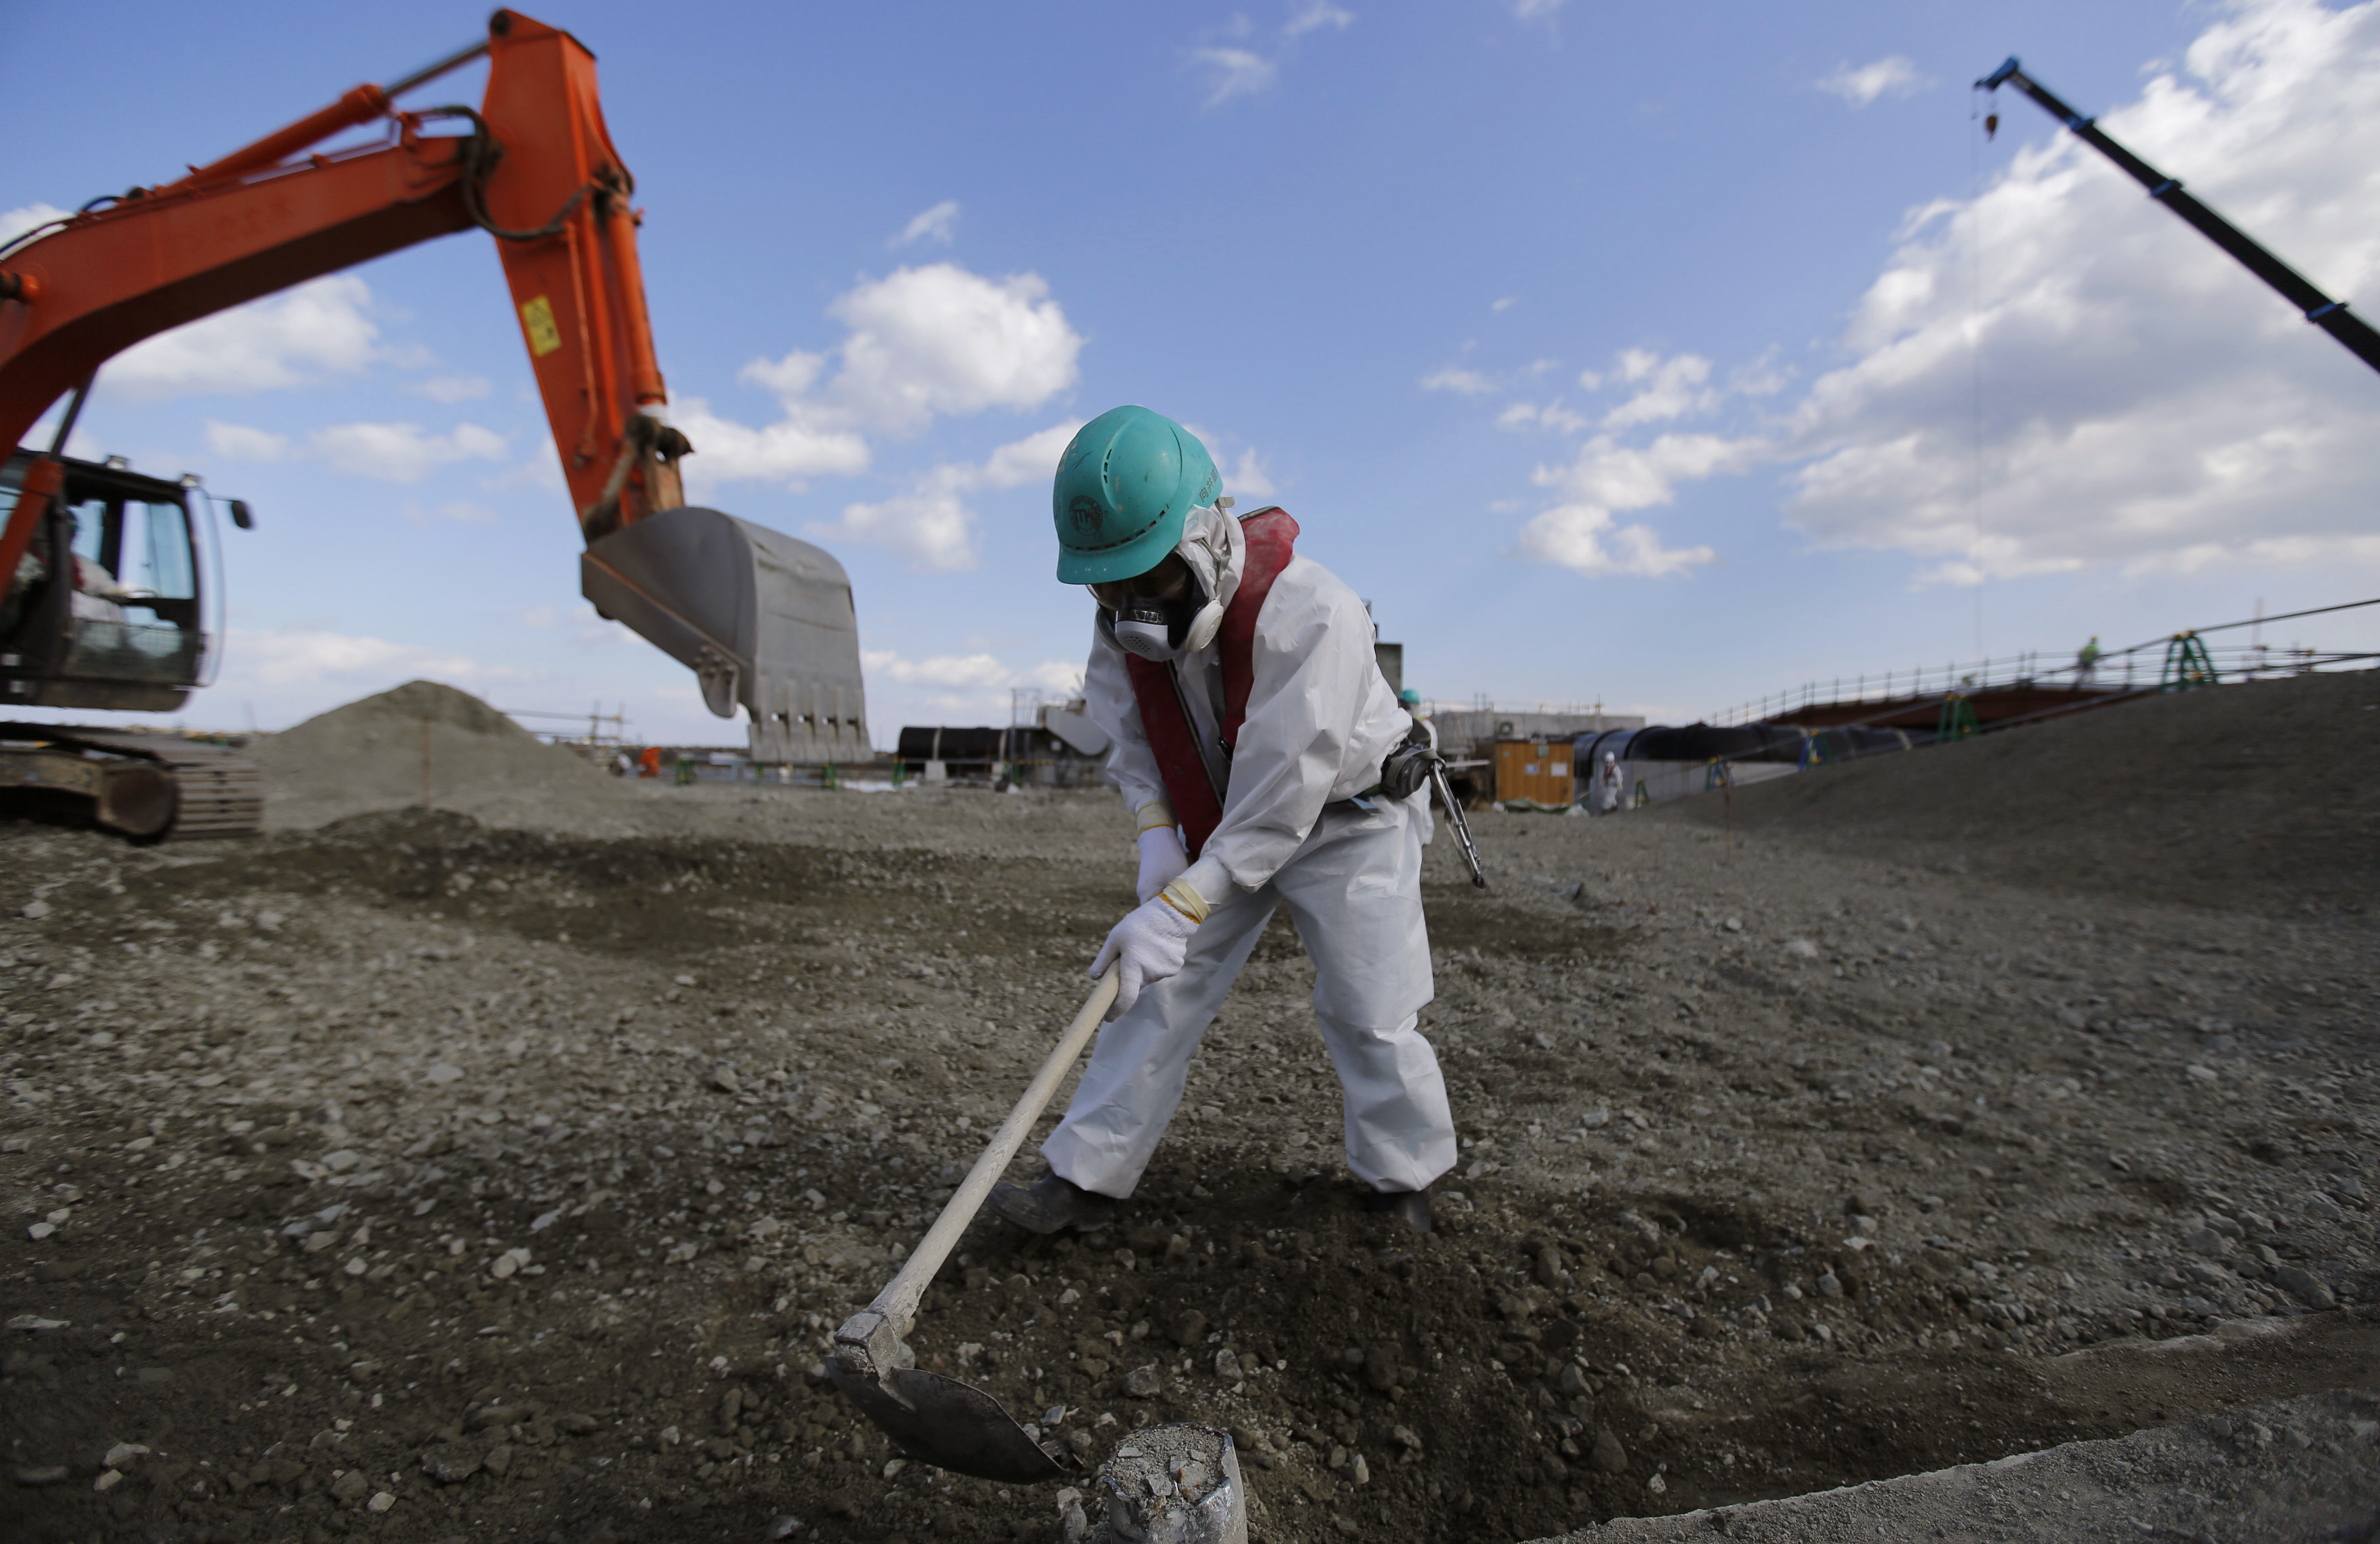 A worker, wearing a protective suit and a mask, levels ground at the tsunami-crippled Fukushima Dai-ichi nuclear power plant, operated by Tokyo Electric Power Co. (TEPCO), in Okuma, Fukushima Prefecture, northeastern Japan, Feb. 10, 2016.